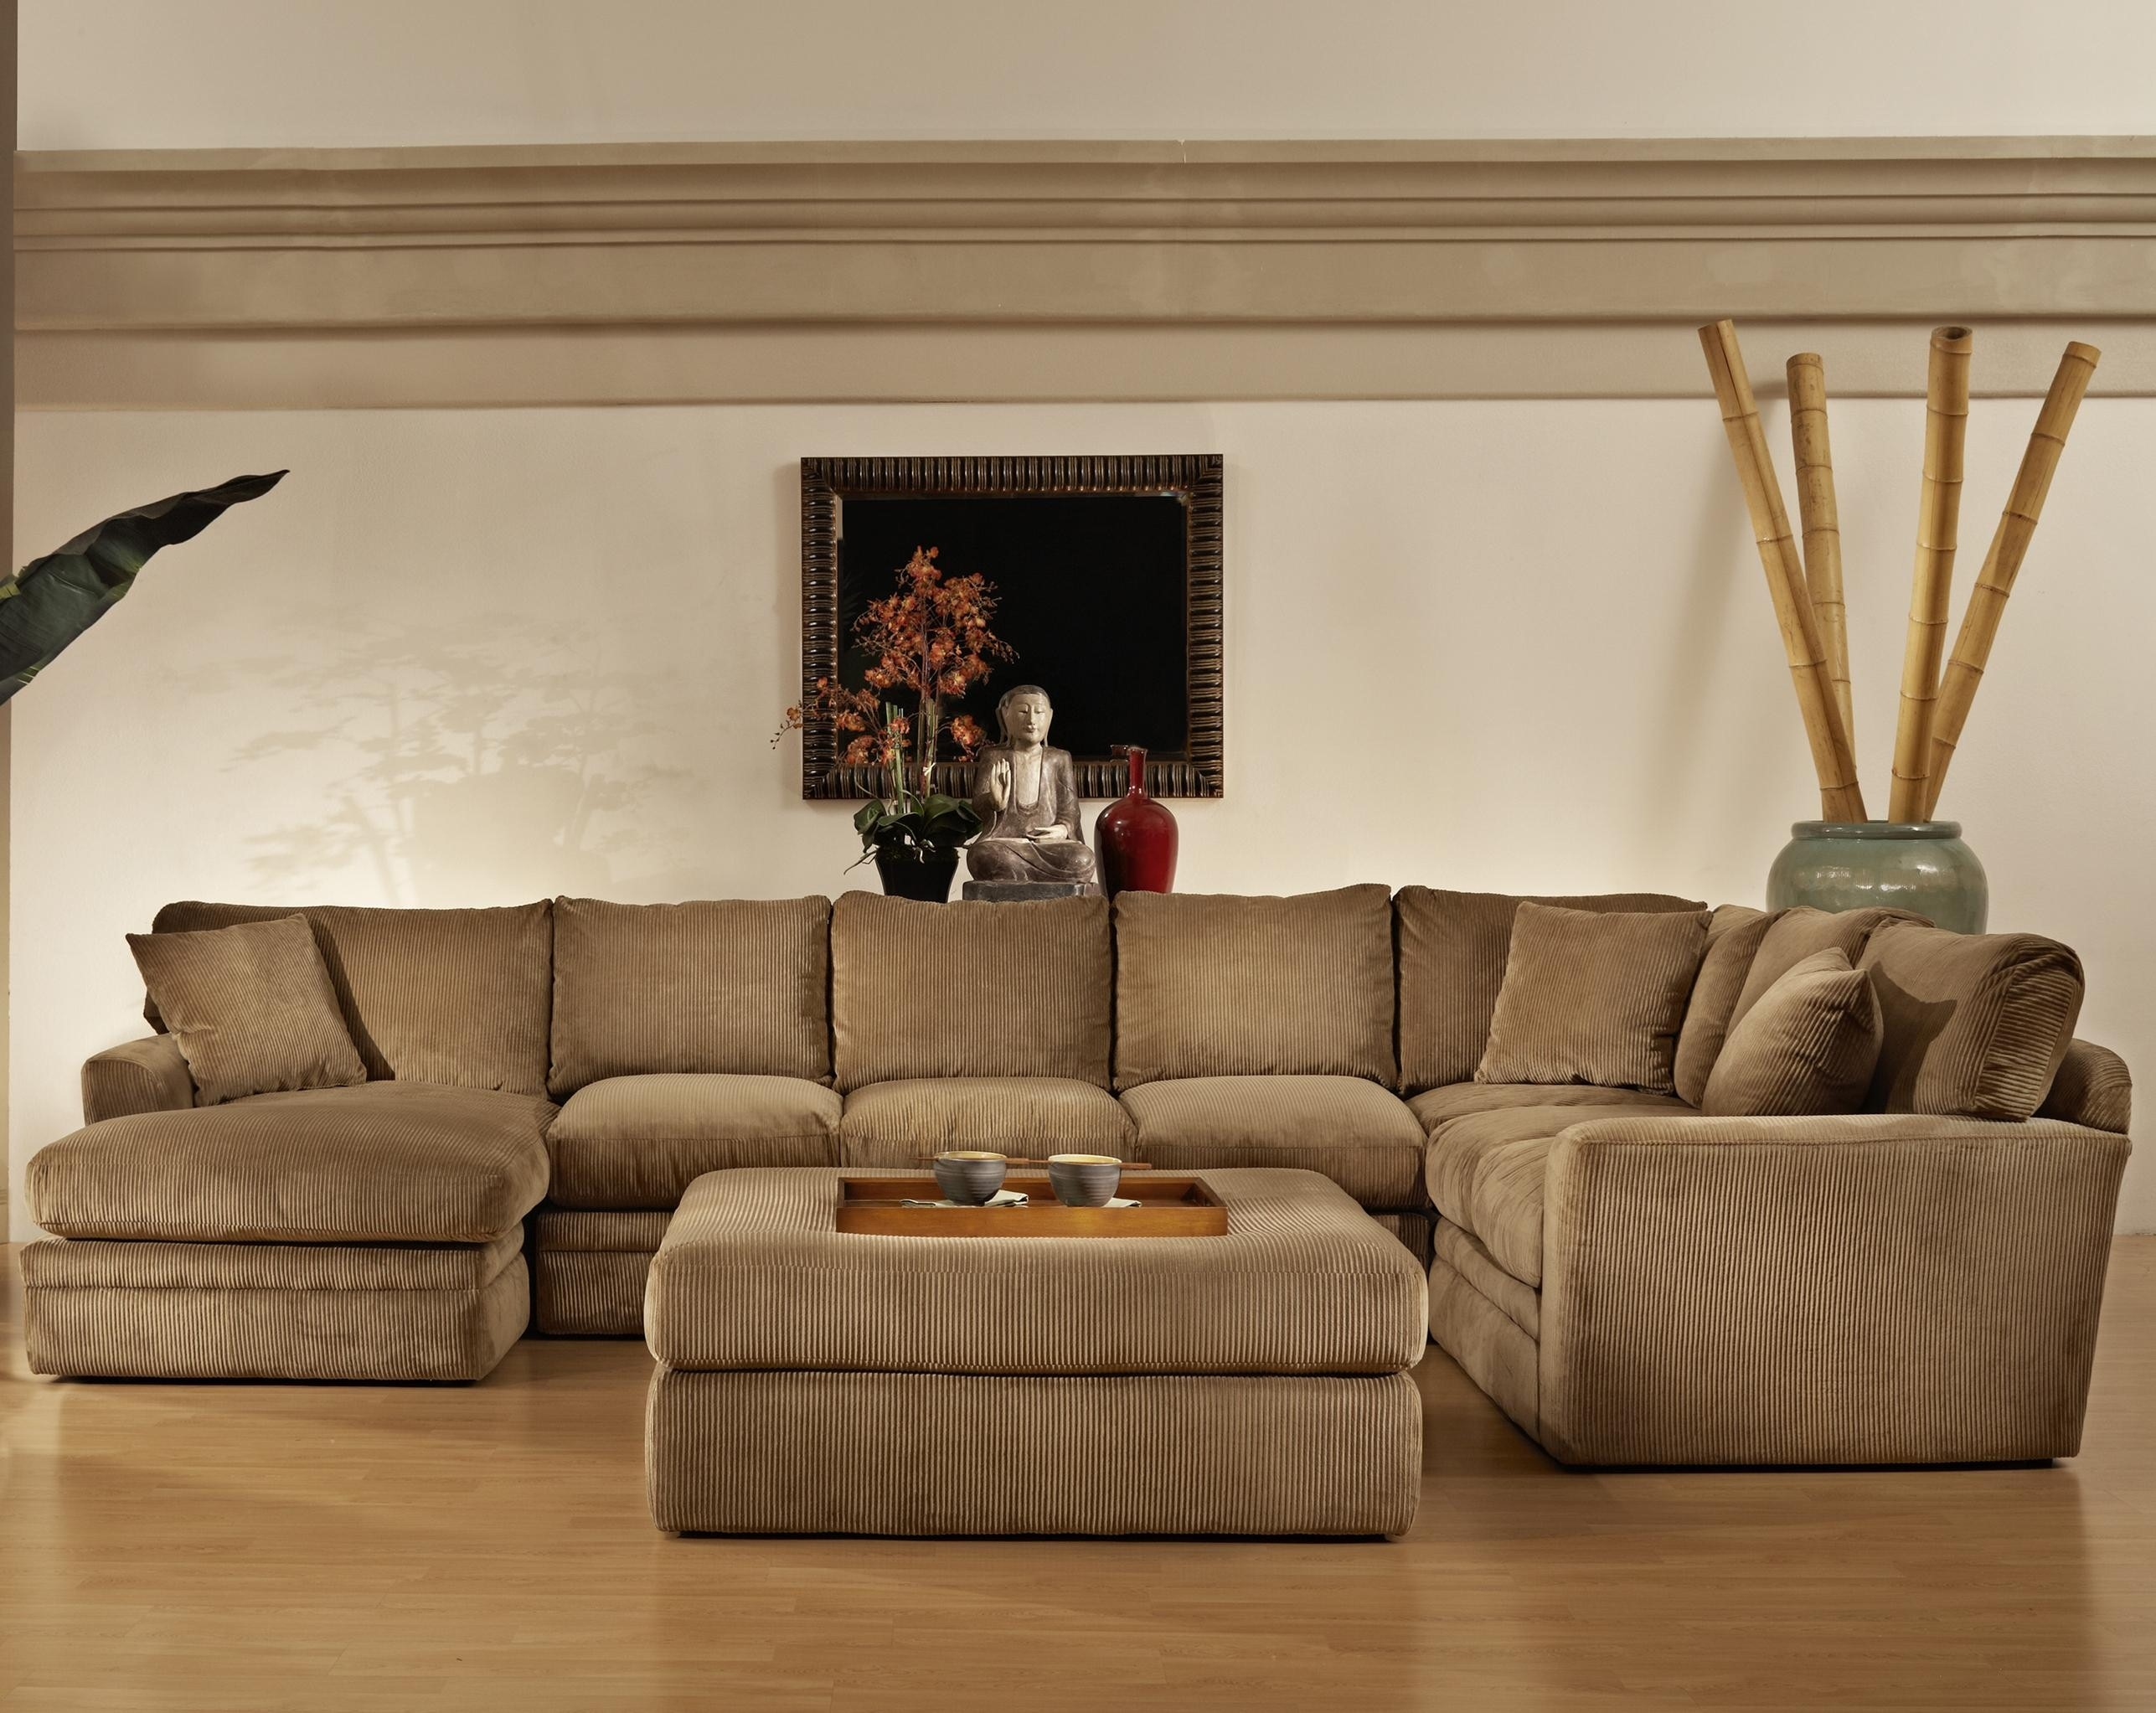 Chaise Lounge Sofa Slipcover Franco Slipcover Lounge Hires New Within 3 Piece Sectional Sofa Slipcovers (Image 5 of 15)